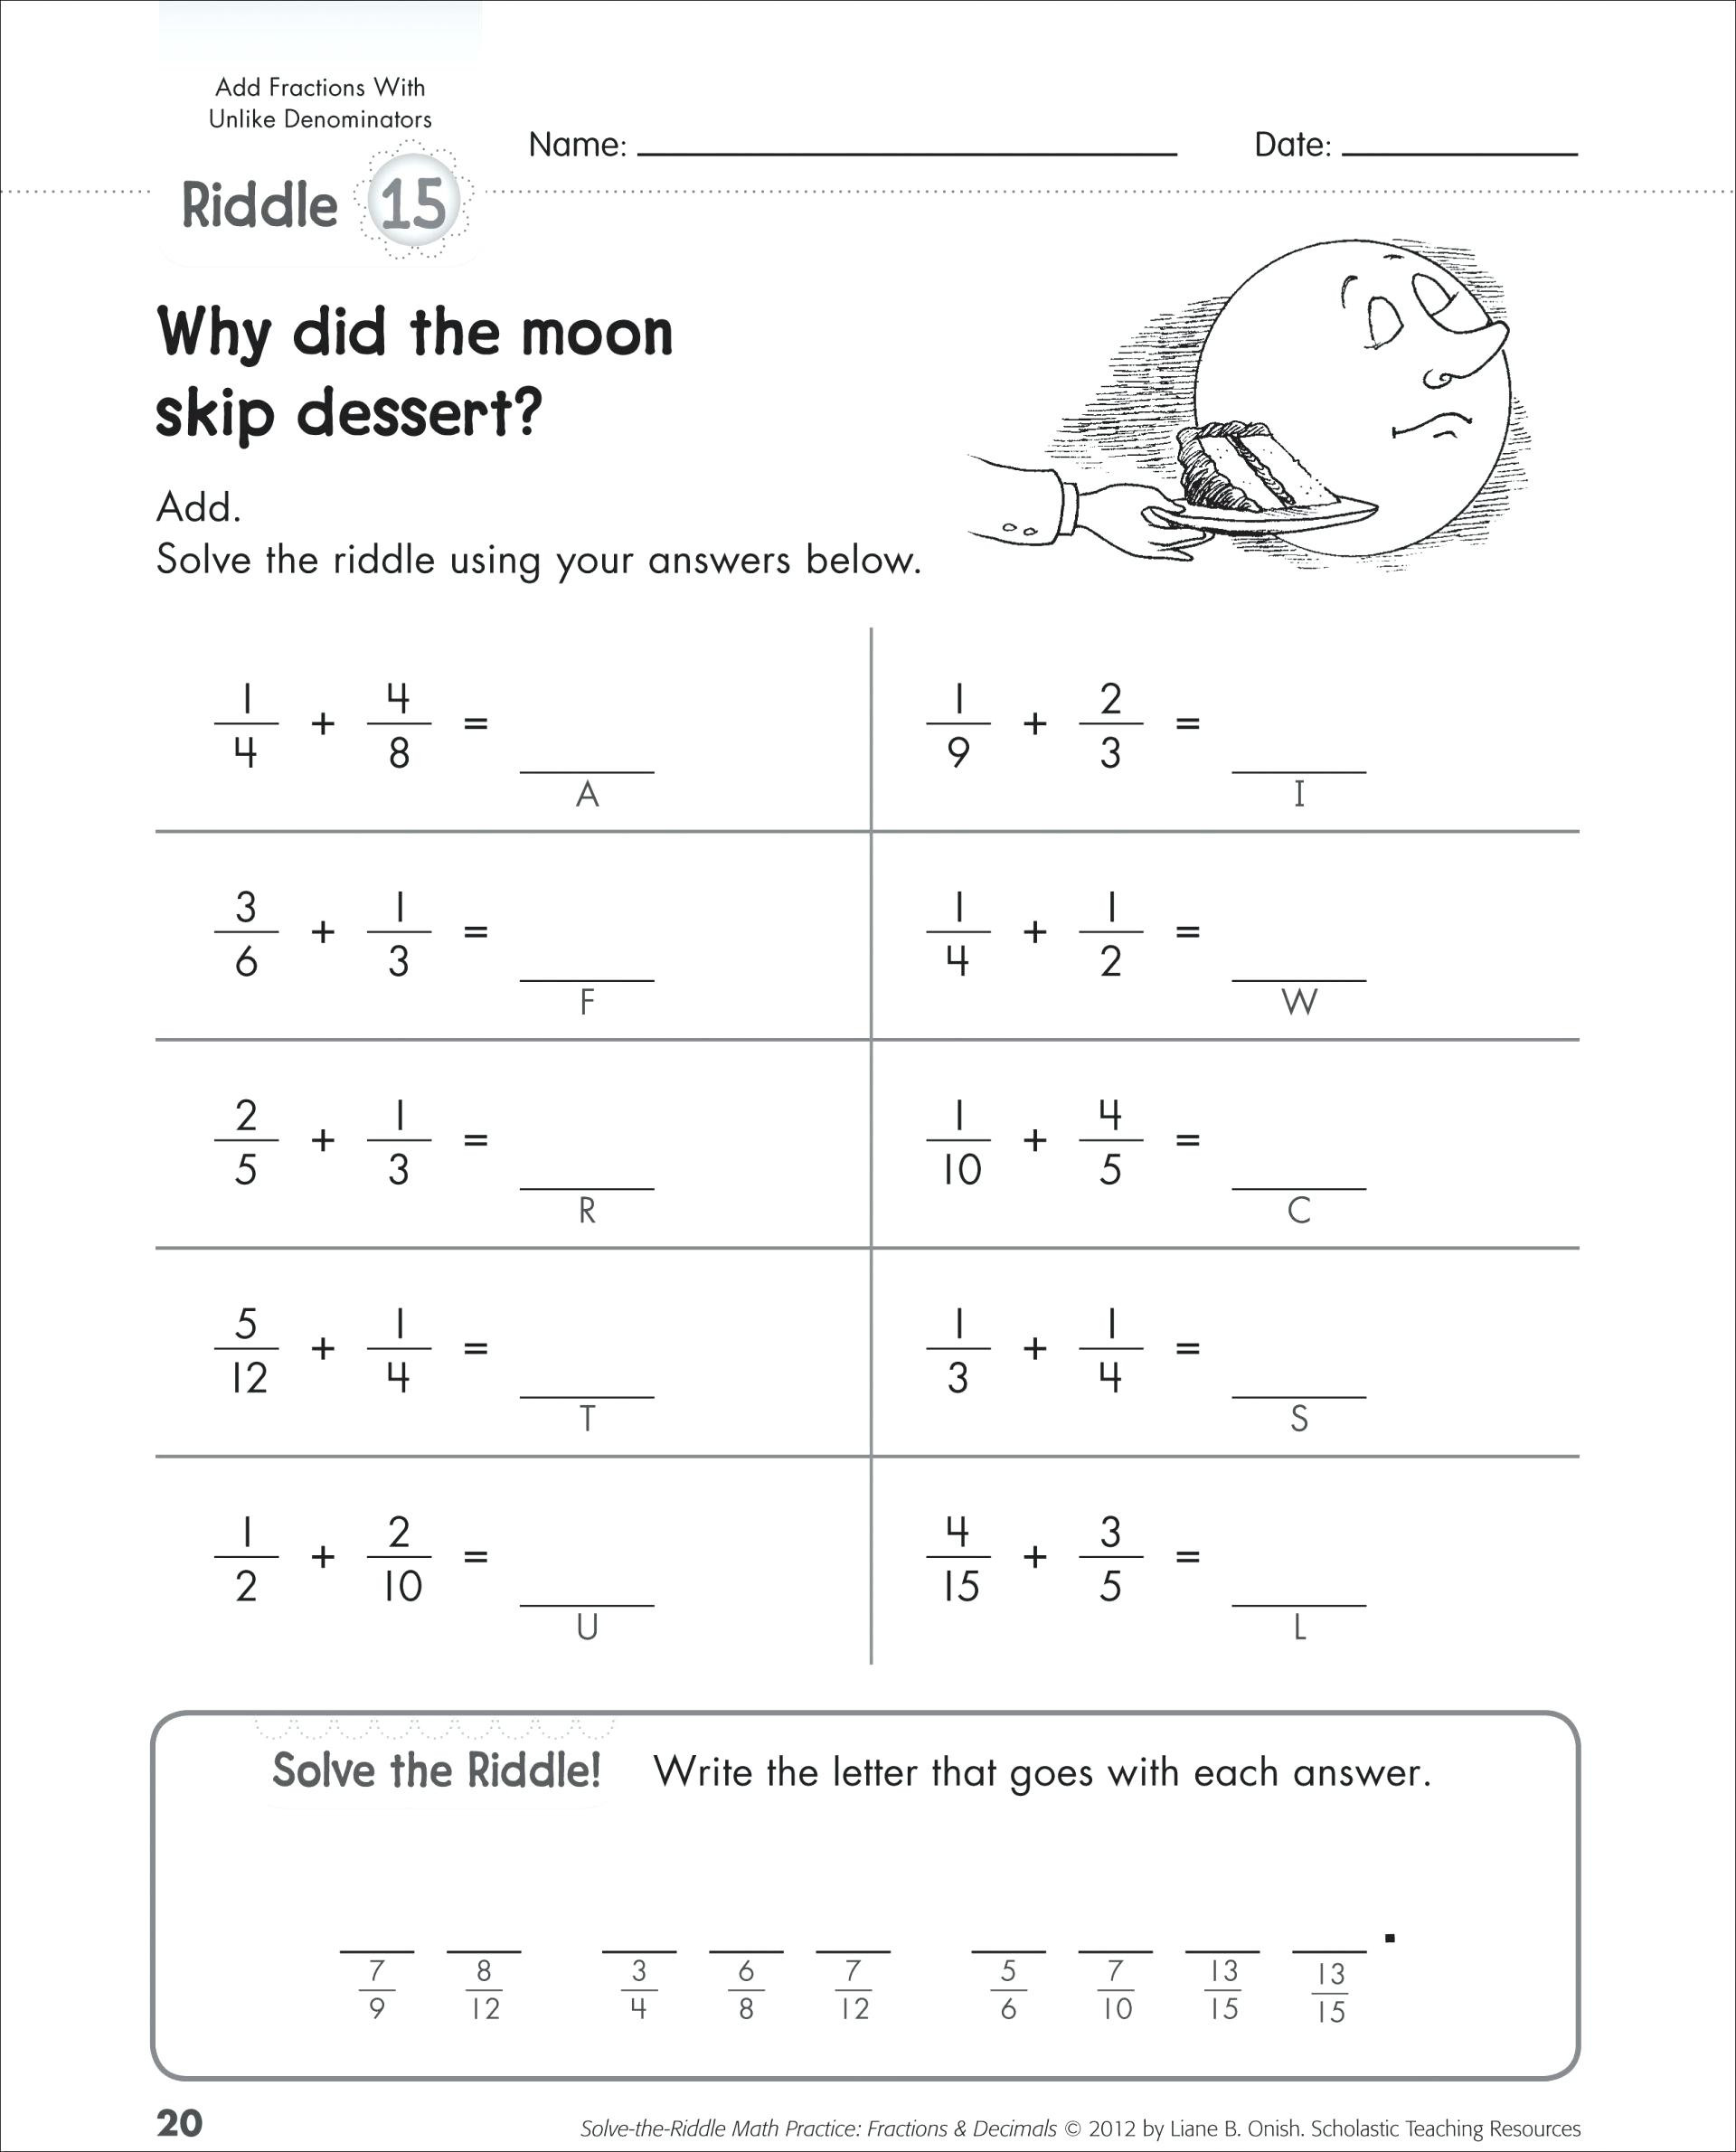 One Step Equations Worksheet Pdf E Step Equations with Rational Coefficients Worksheet